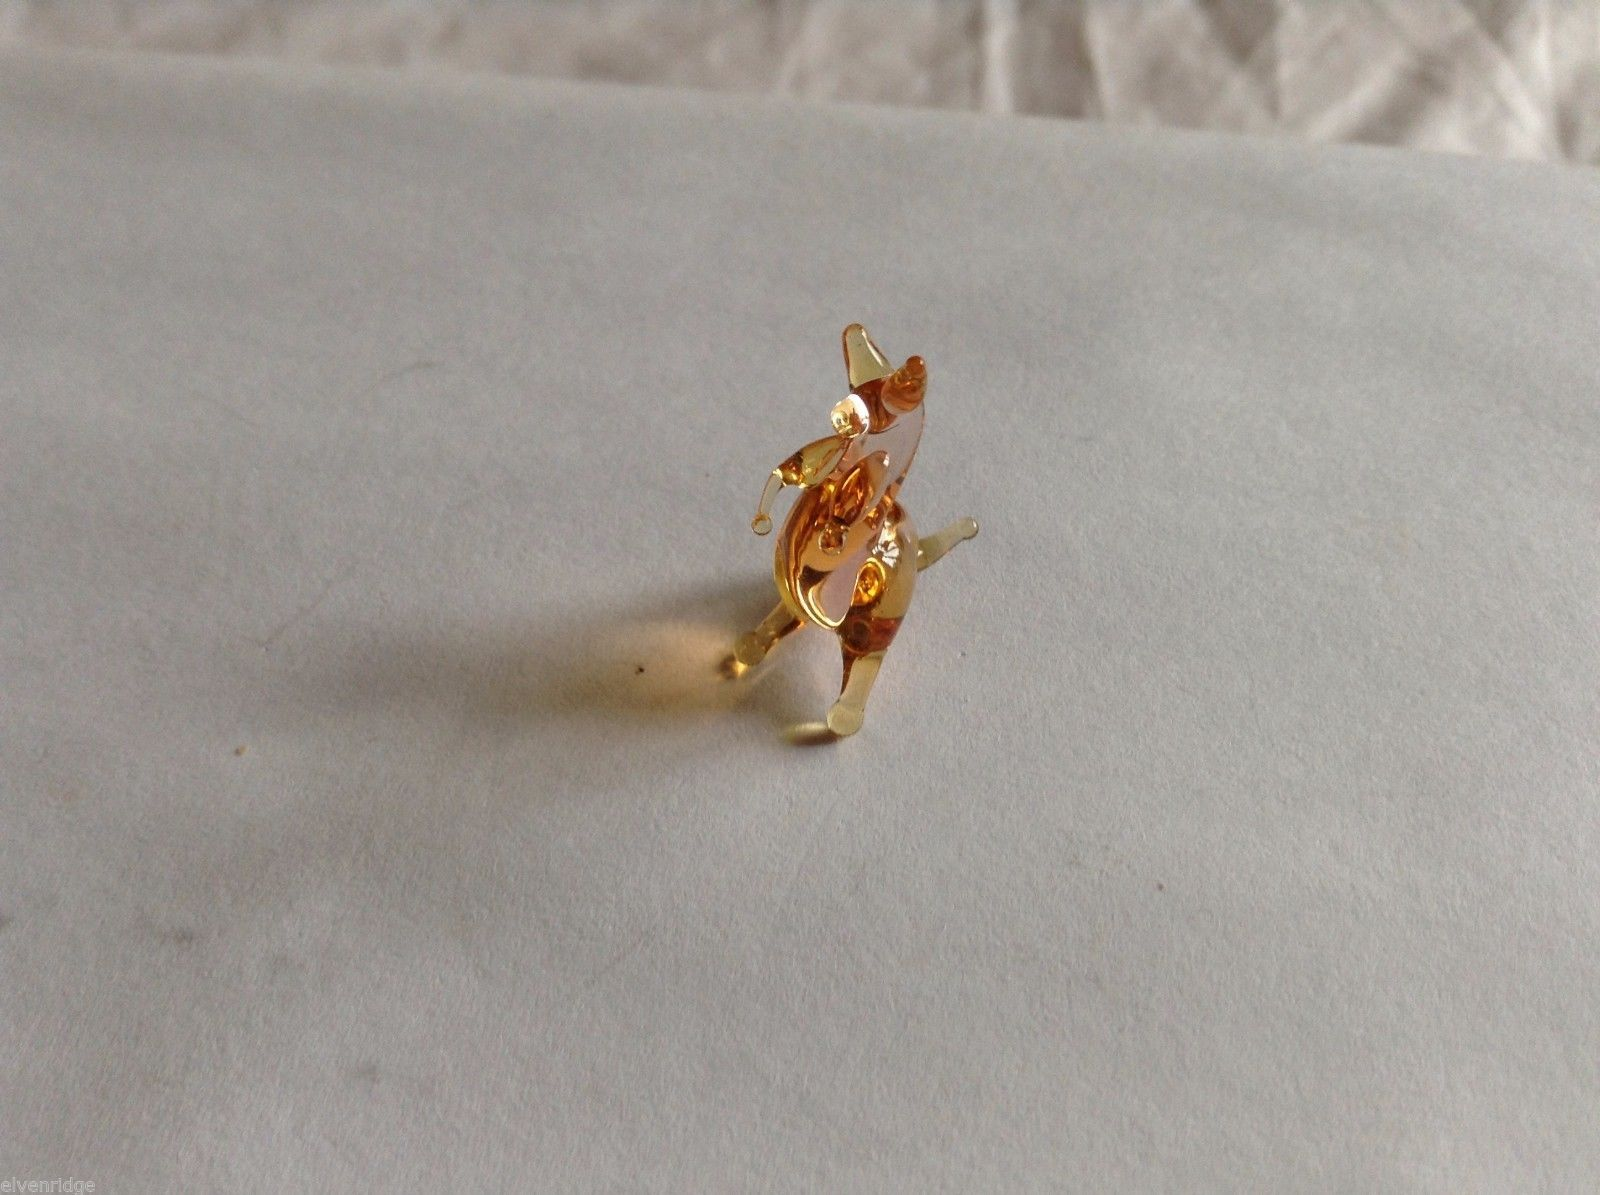 Micro Miniature small hand blown glass made USA amber colored kangaroo